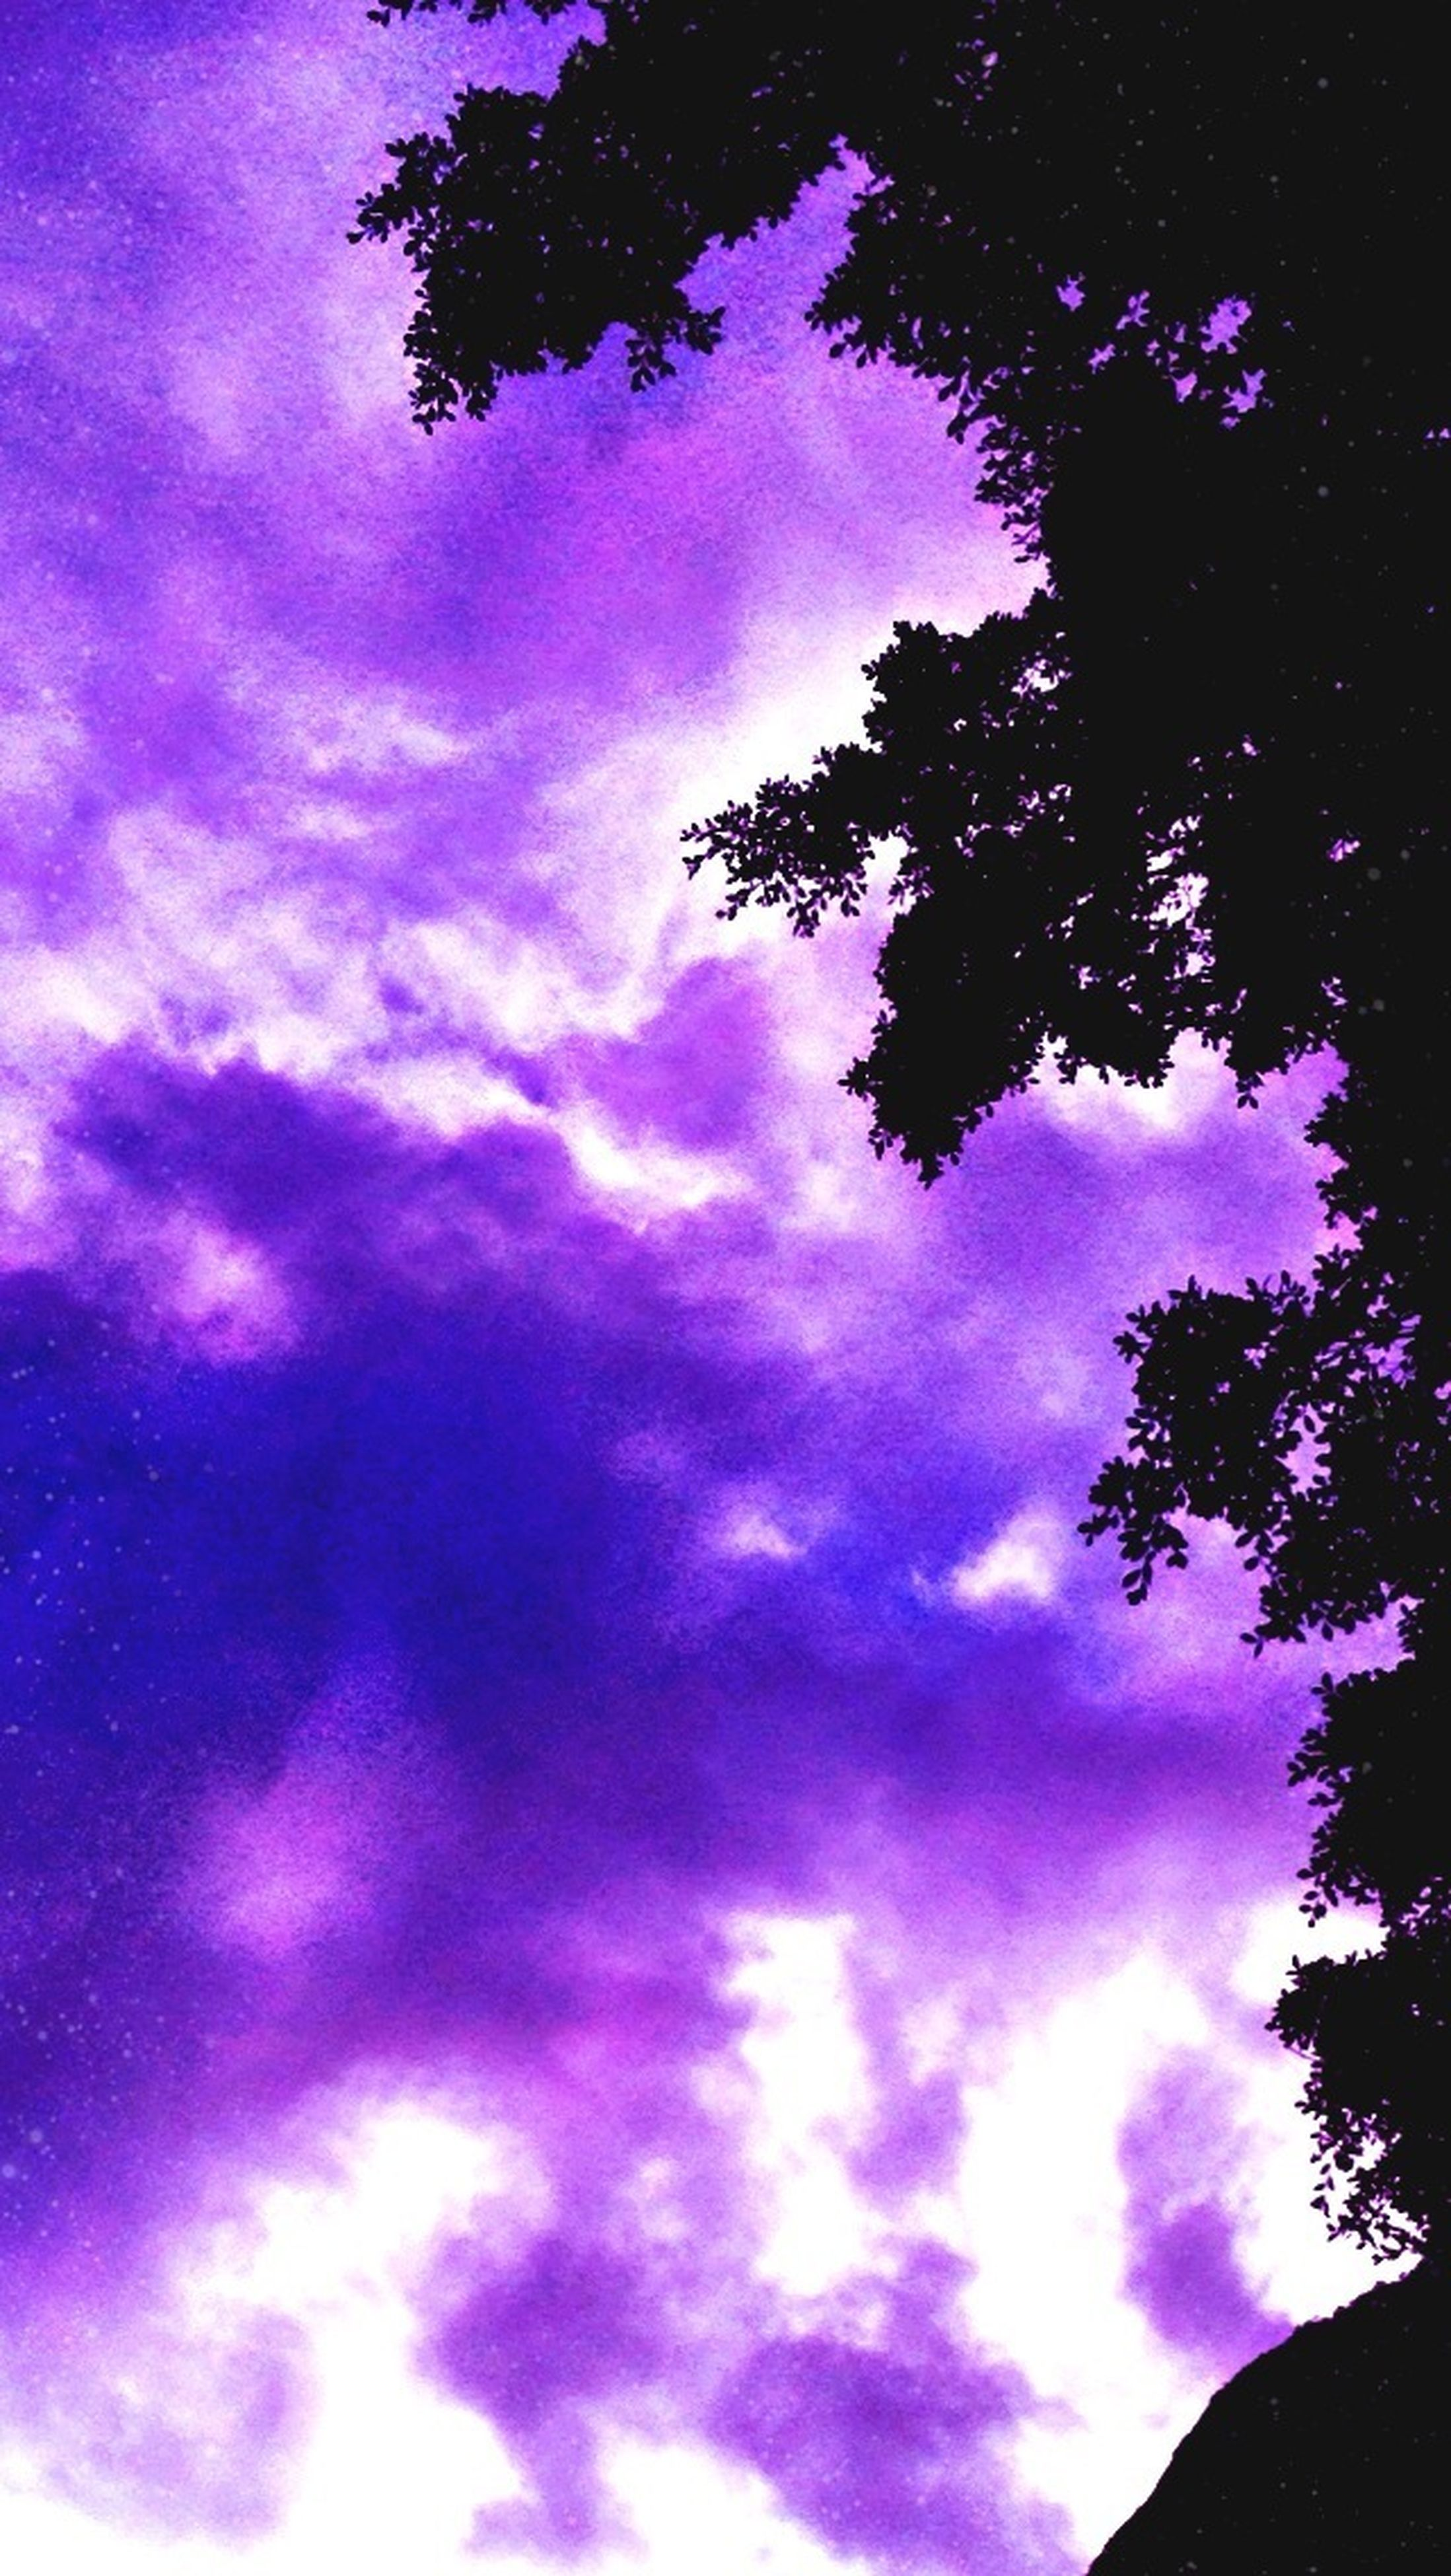 sky, low angle view, cloud - sky, tree, beauty in nature, tranquility, nature, silhouette, blue, cloudy, scenics, tranquil scene, cloud, growth, idyllic, outdoors, purple, dramatic sky, no people, dusk